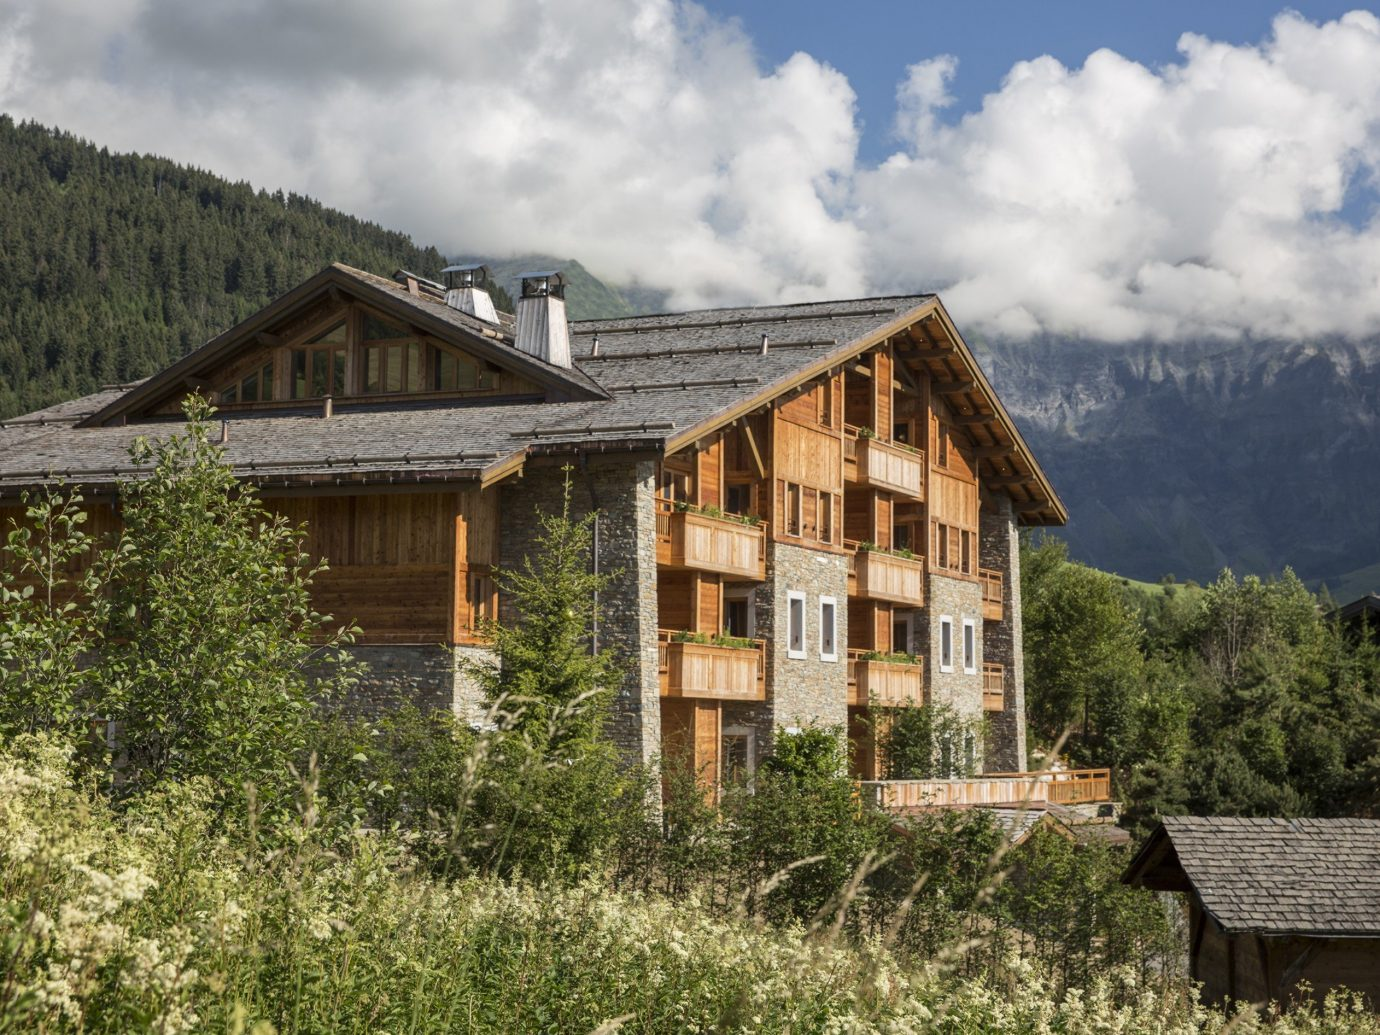 Boutique Hotels Hotels Outdoors + Adventure Winter outdoor building tree sky house grass mountainous landforms mountain home hut mountain range cottage mountain village alps farmhouse log cabin real estate rural area roof facade estate elevation landscape Villa Village hillside